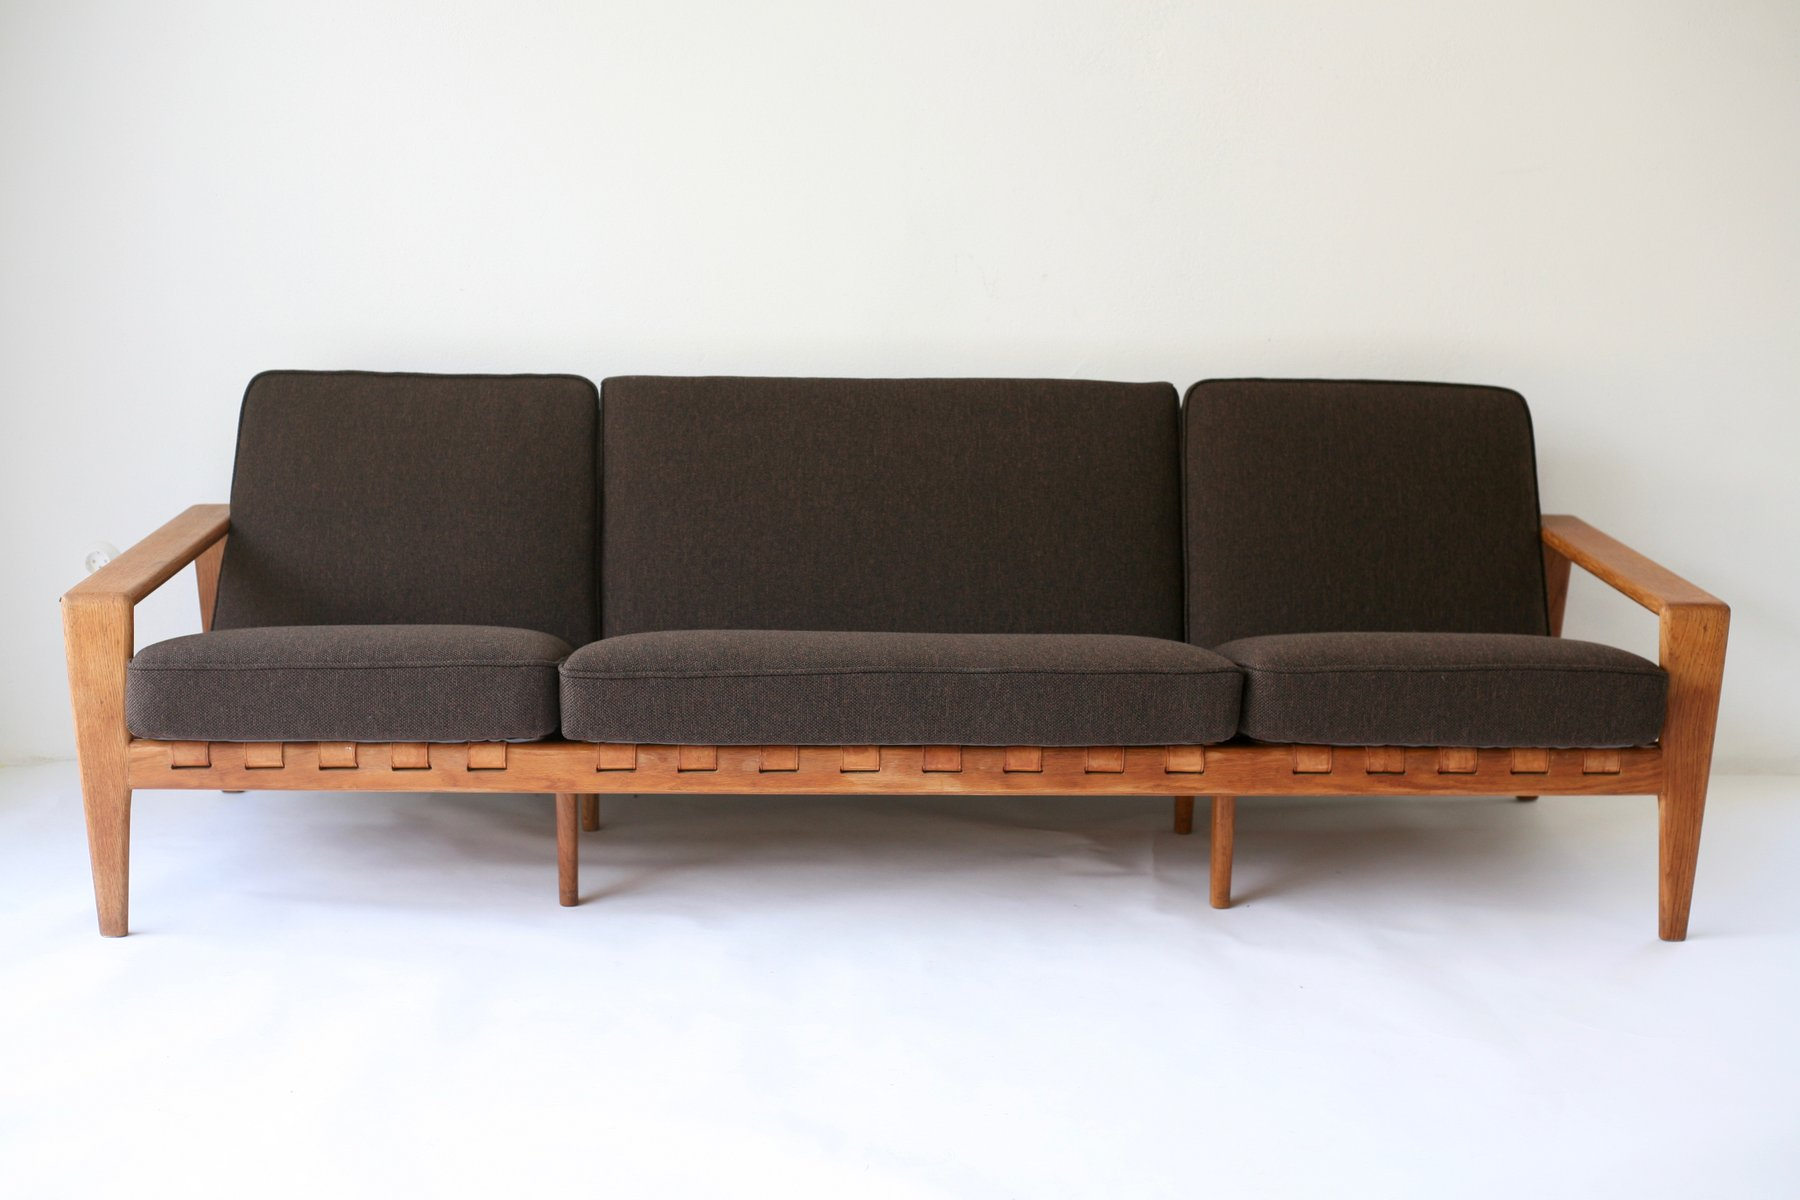 mid century bod sofa von svante skogh f r s ffle m belfabrik 1959 bei pamono kaufen. Black Bedroom Furniture Sets. Home Design Ideas